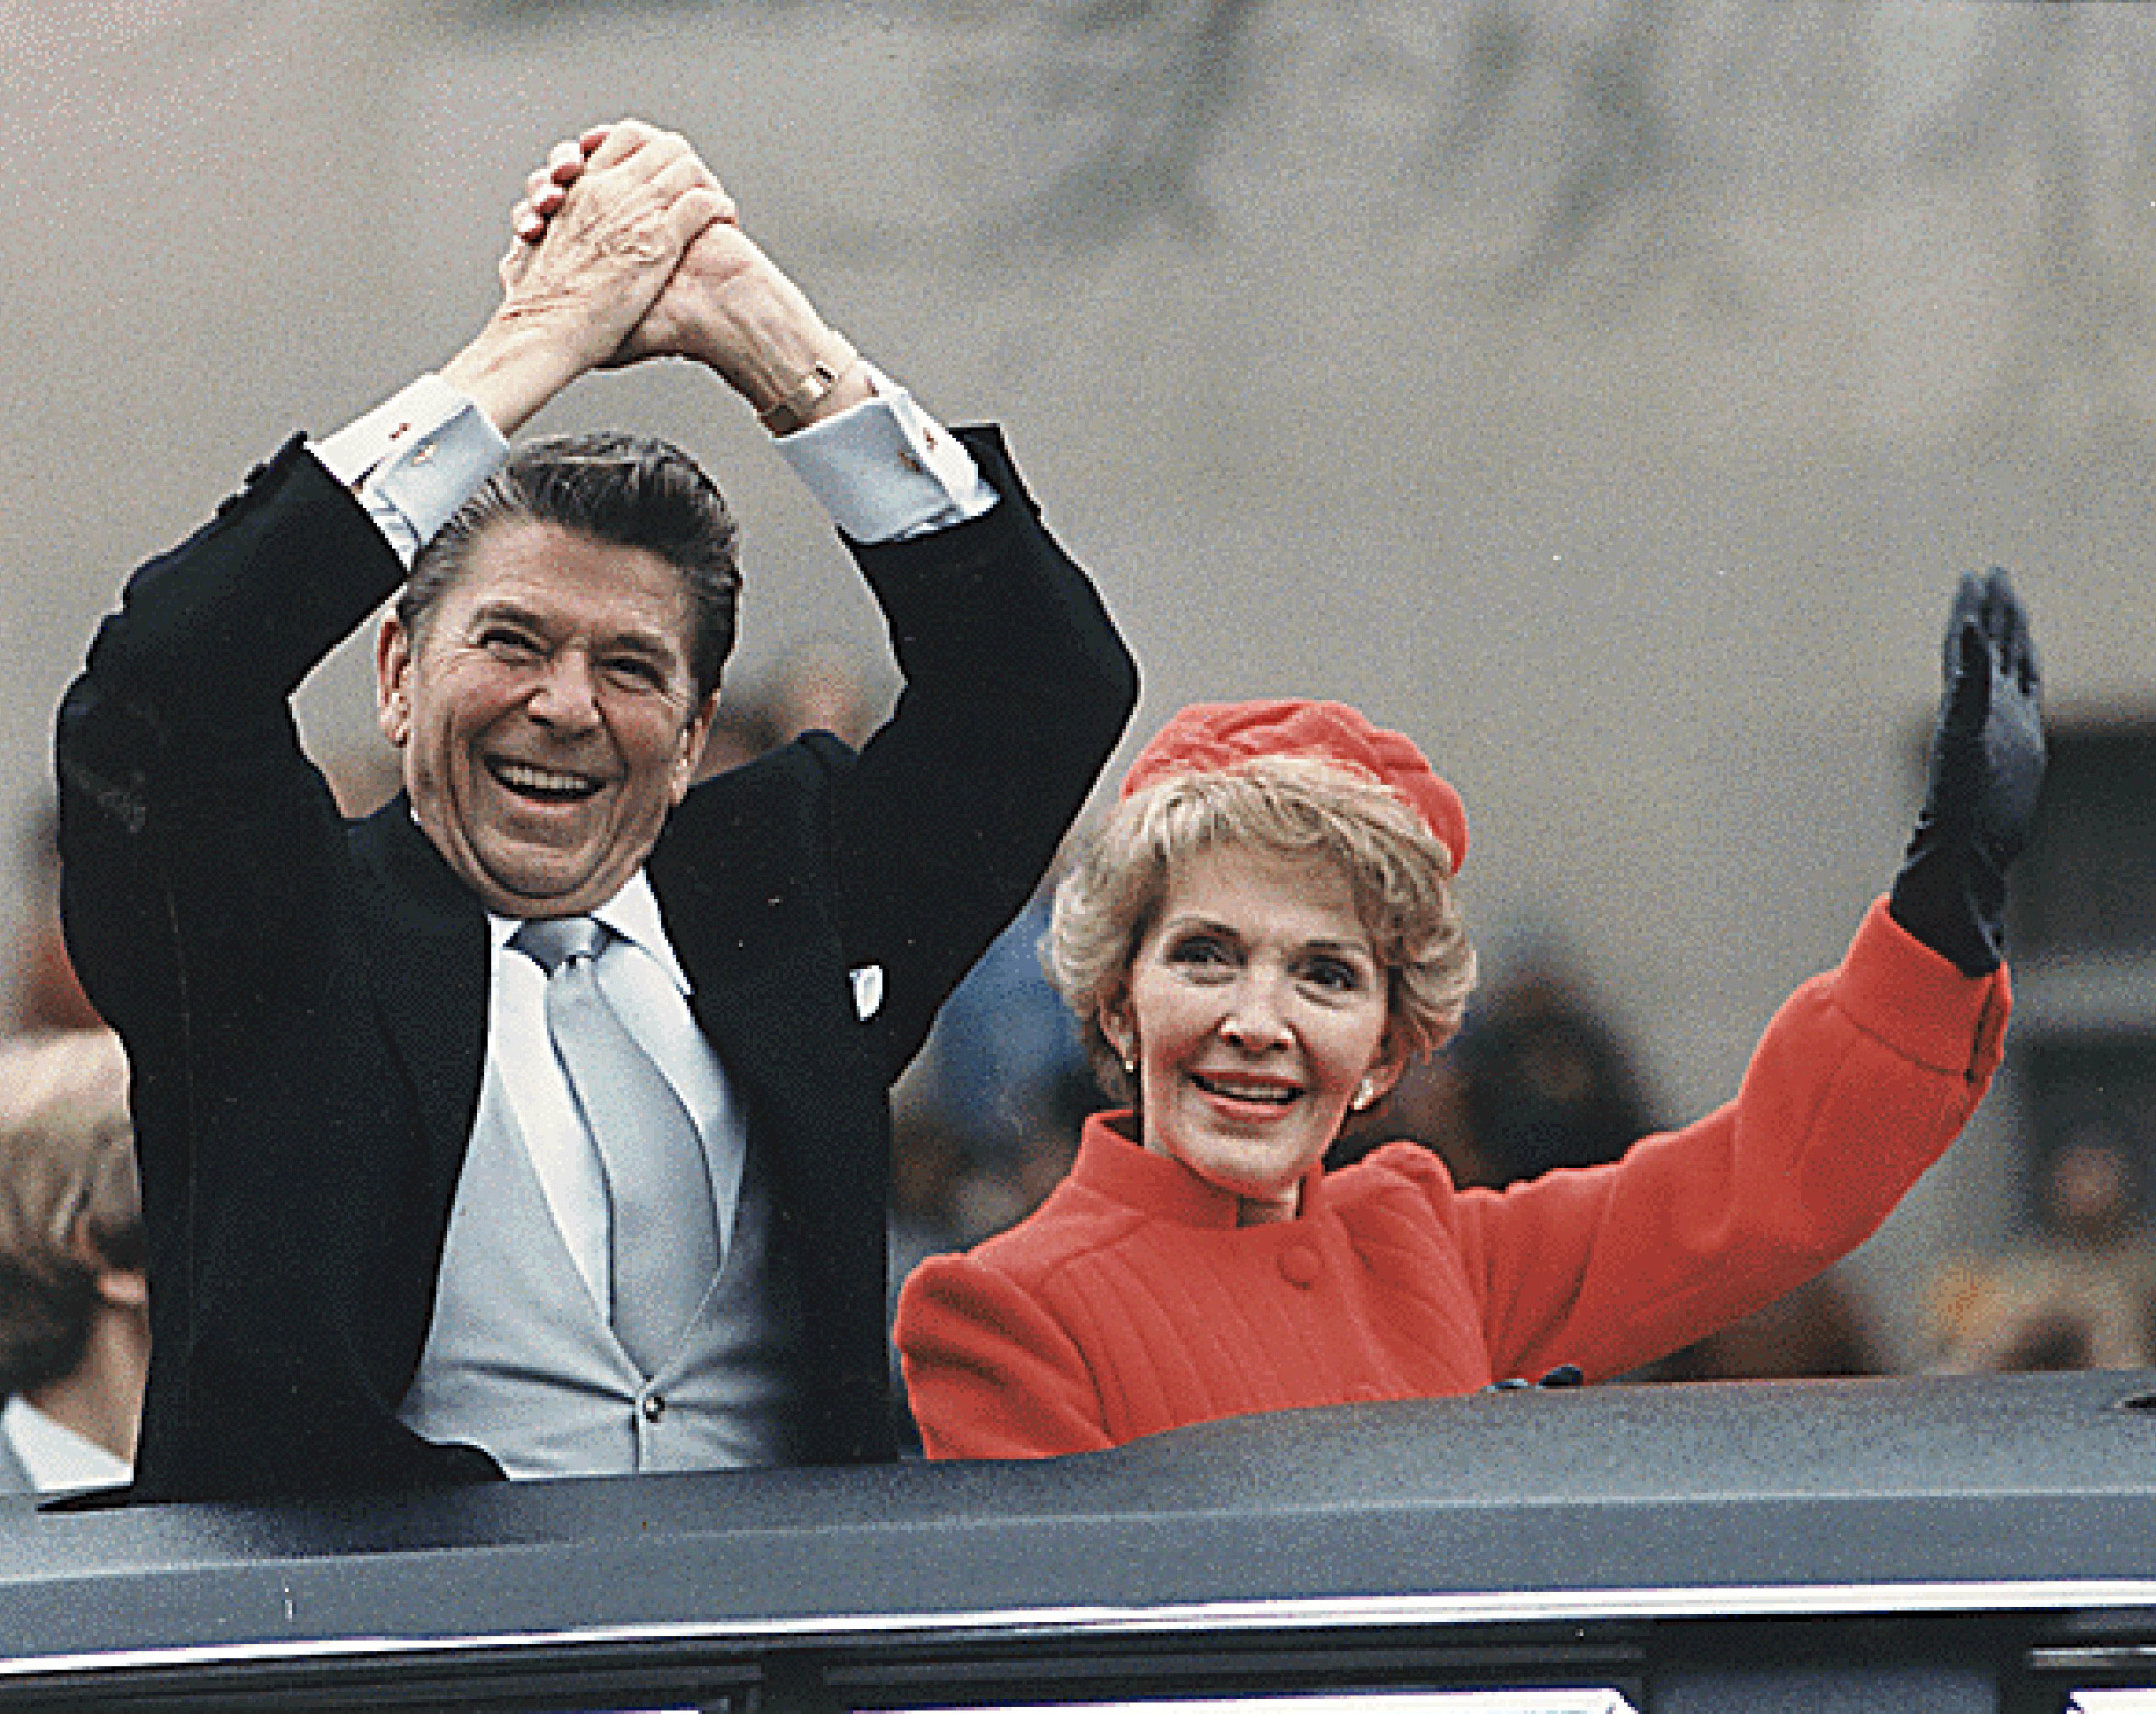 President Ronald Reagan and First Lady Nancy Reagan wave to well-wishers during the Inaugural Parade in Washington, DC on January 20, 1981.